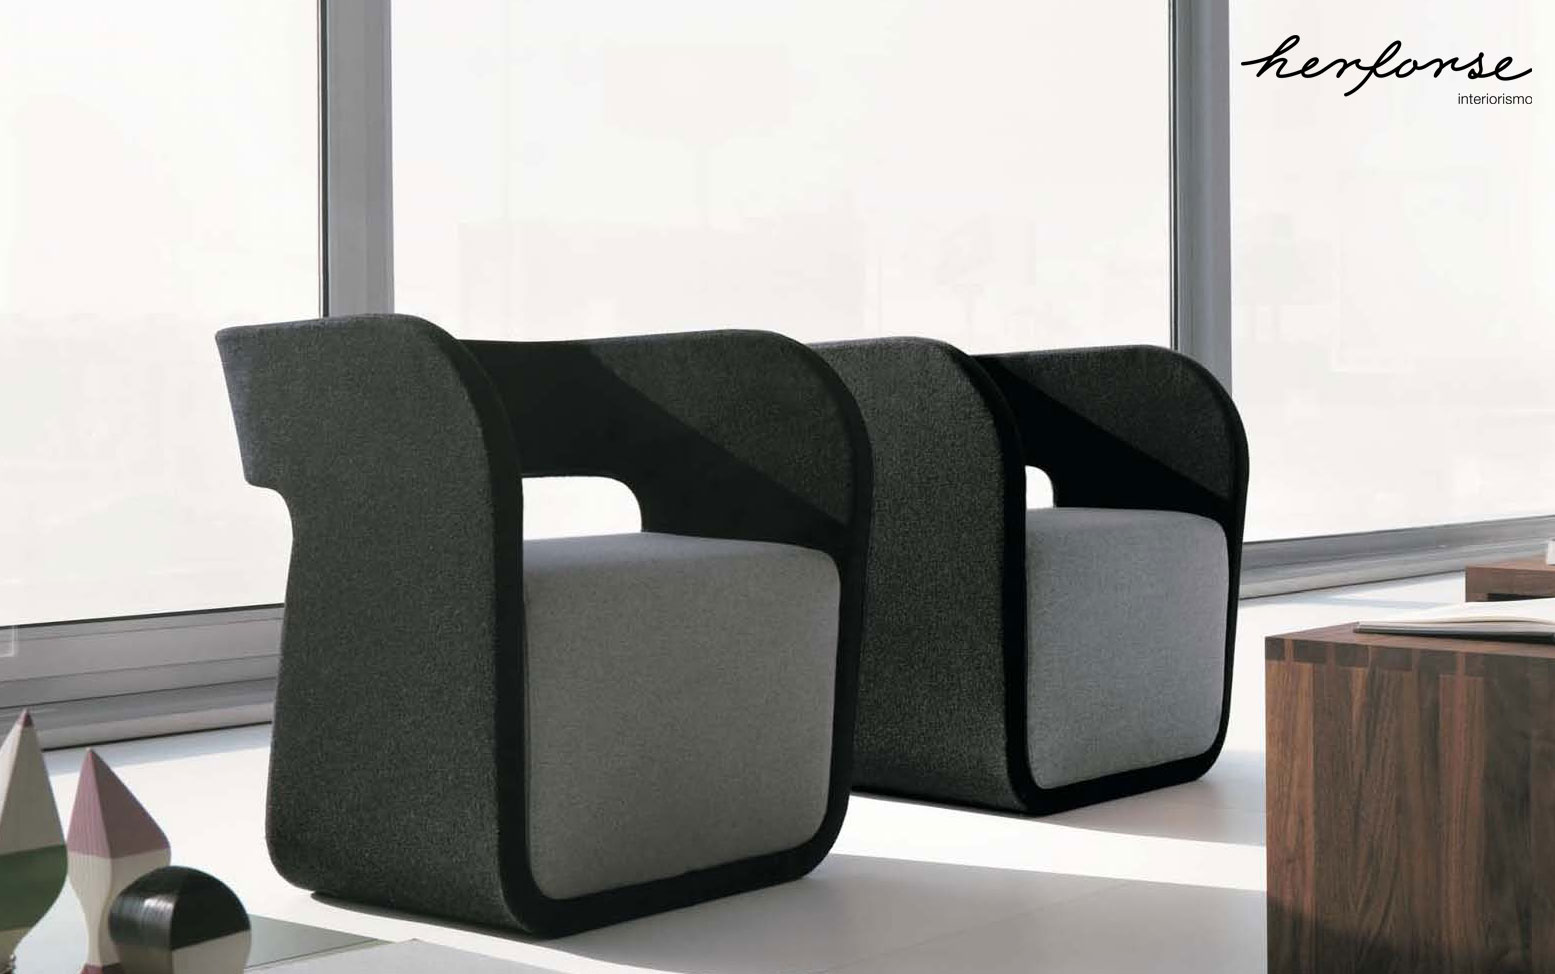 Sillones individuales sofas tapiceria for Sillones individuales